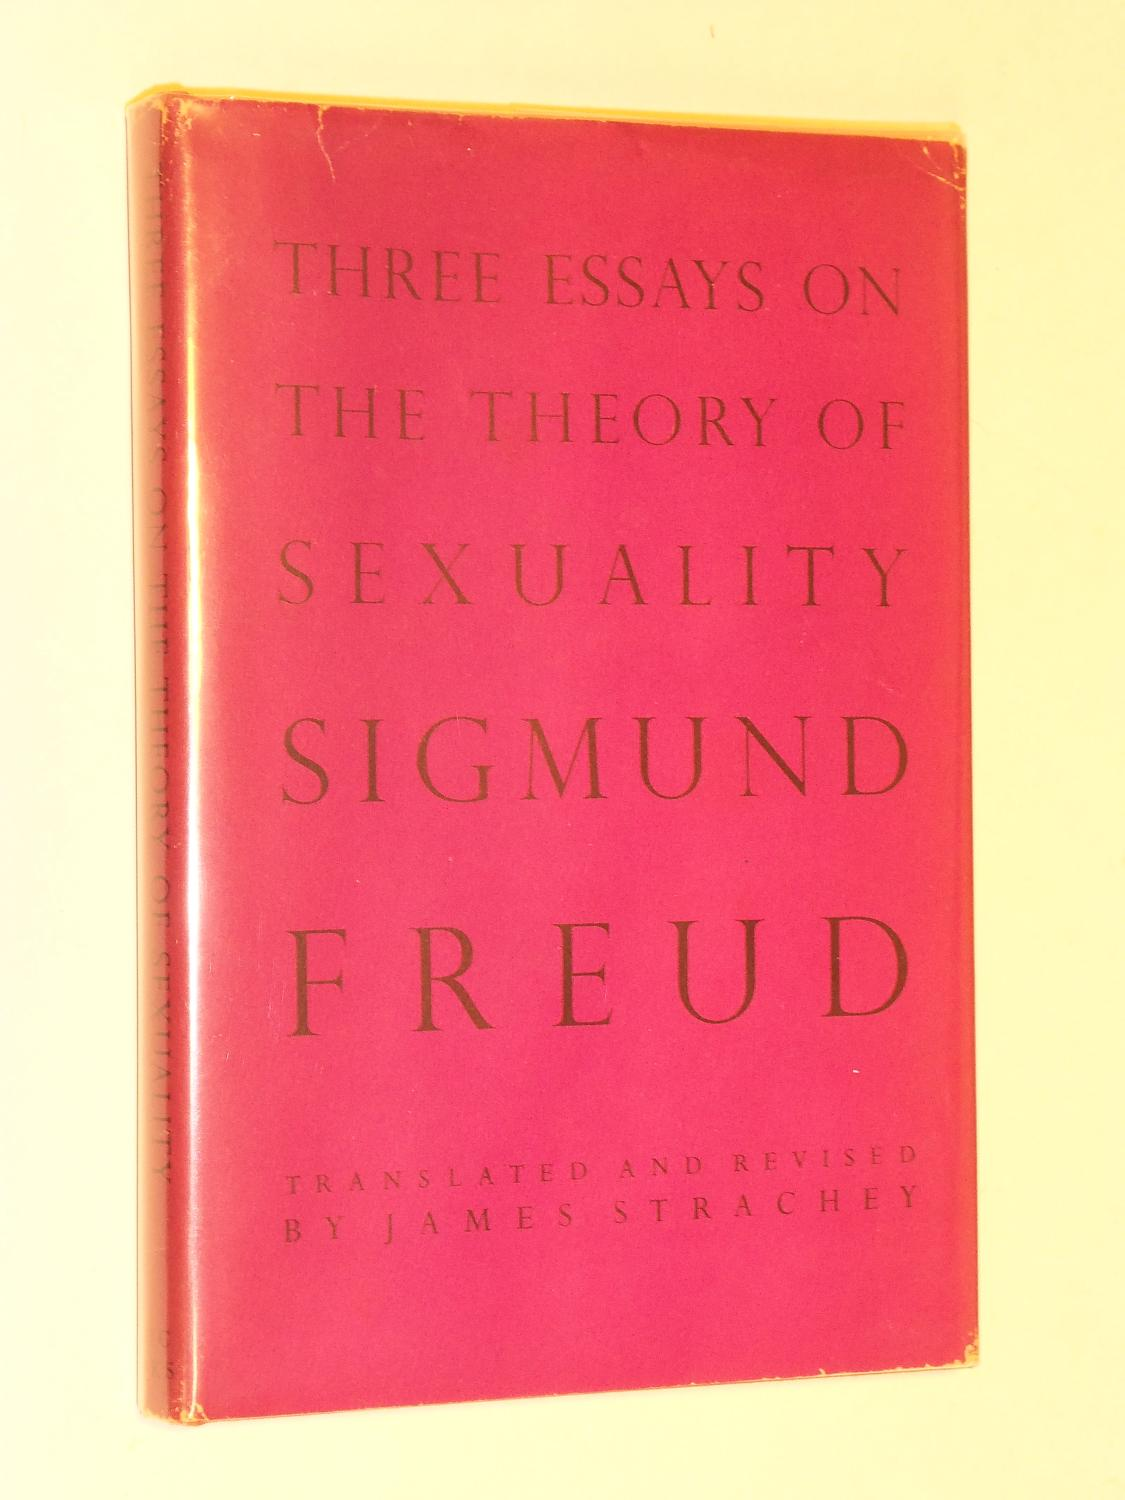 three essays on the theory of sexuality freud sigmund first three essays on the theory of sexuality freud sigmund first edition abebooks